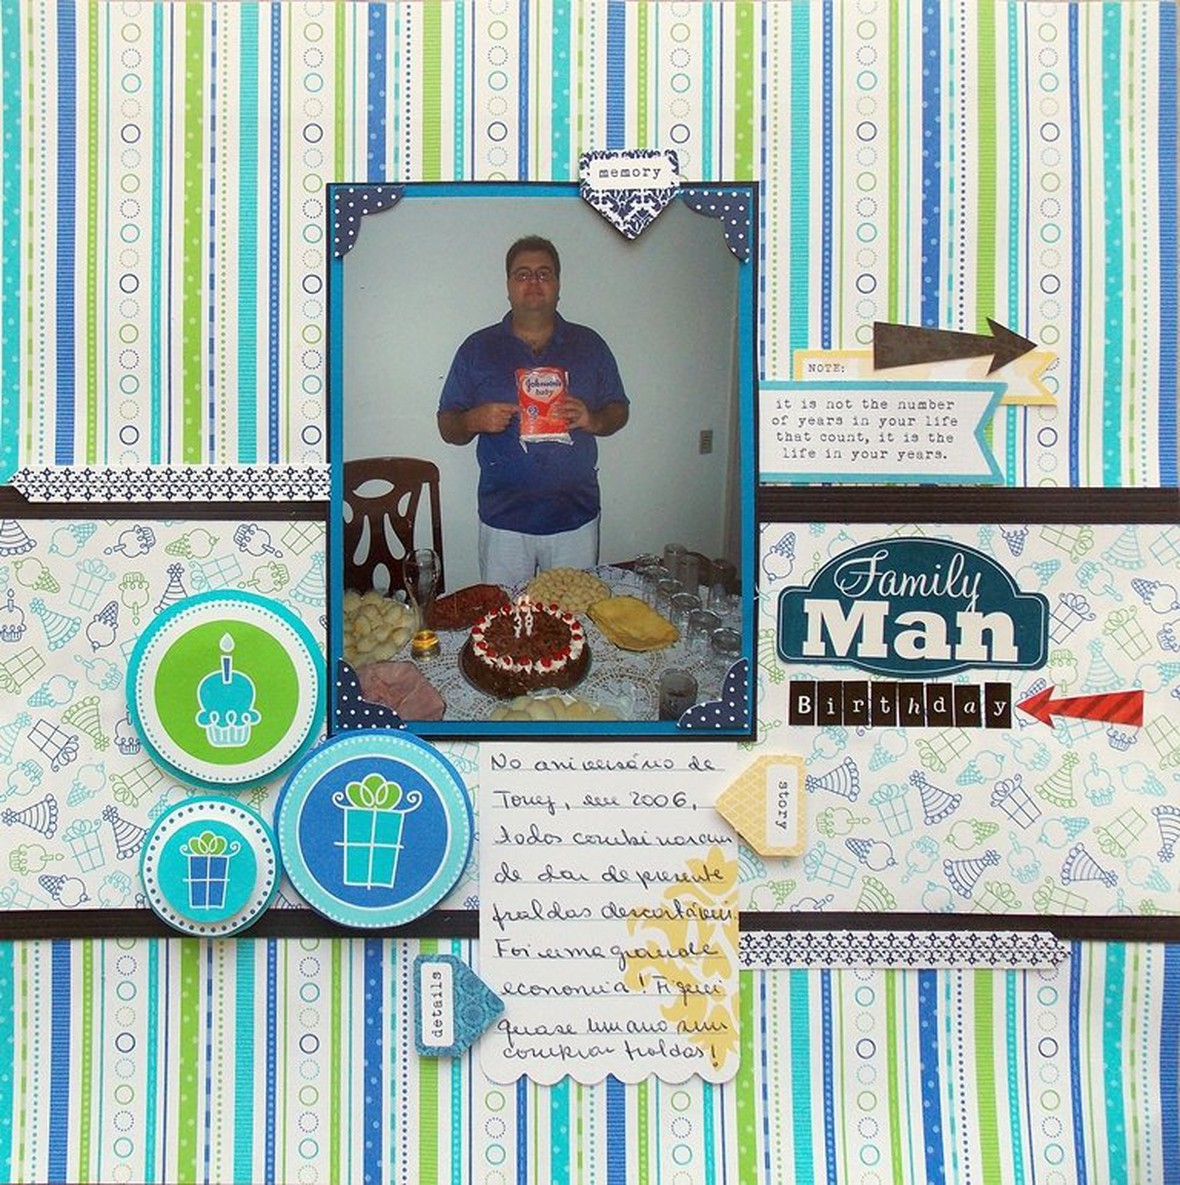 Family man birthday menor original